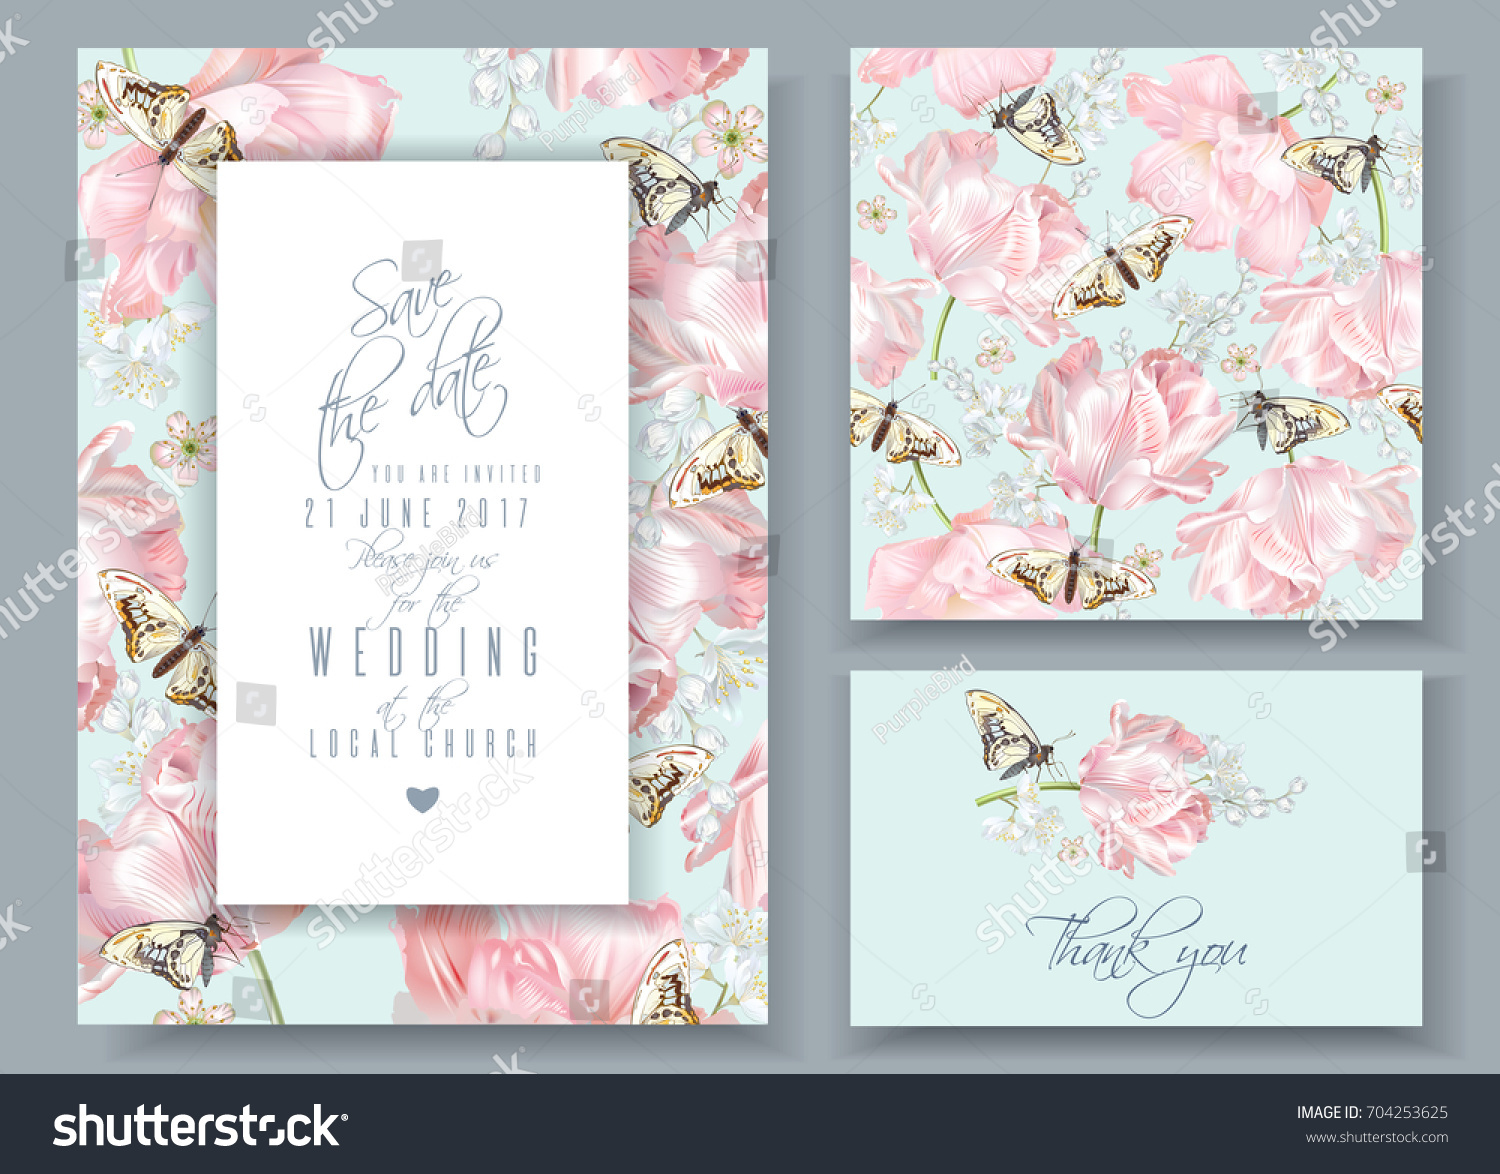 Vector Wedding Invitation Cards Seamless Pattern Stock Vector ...